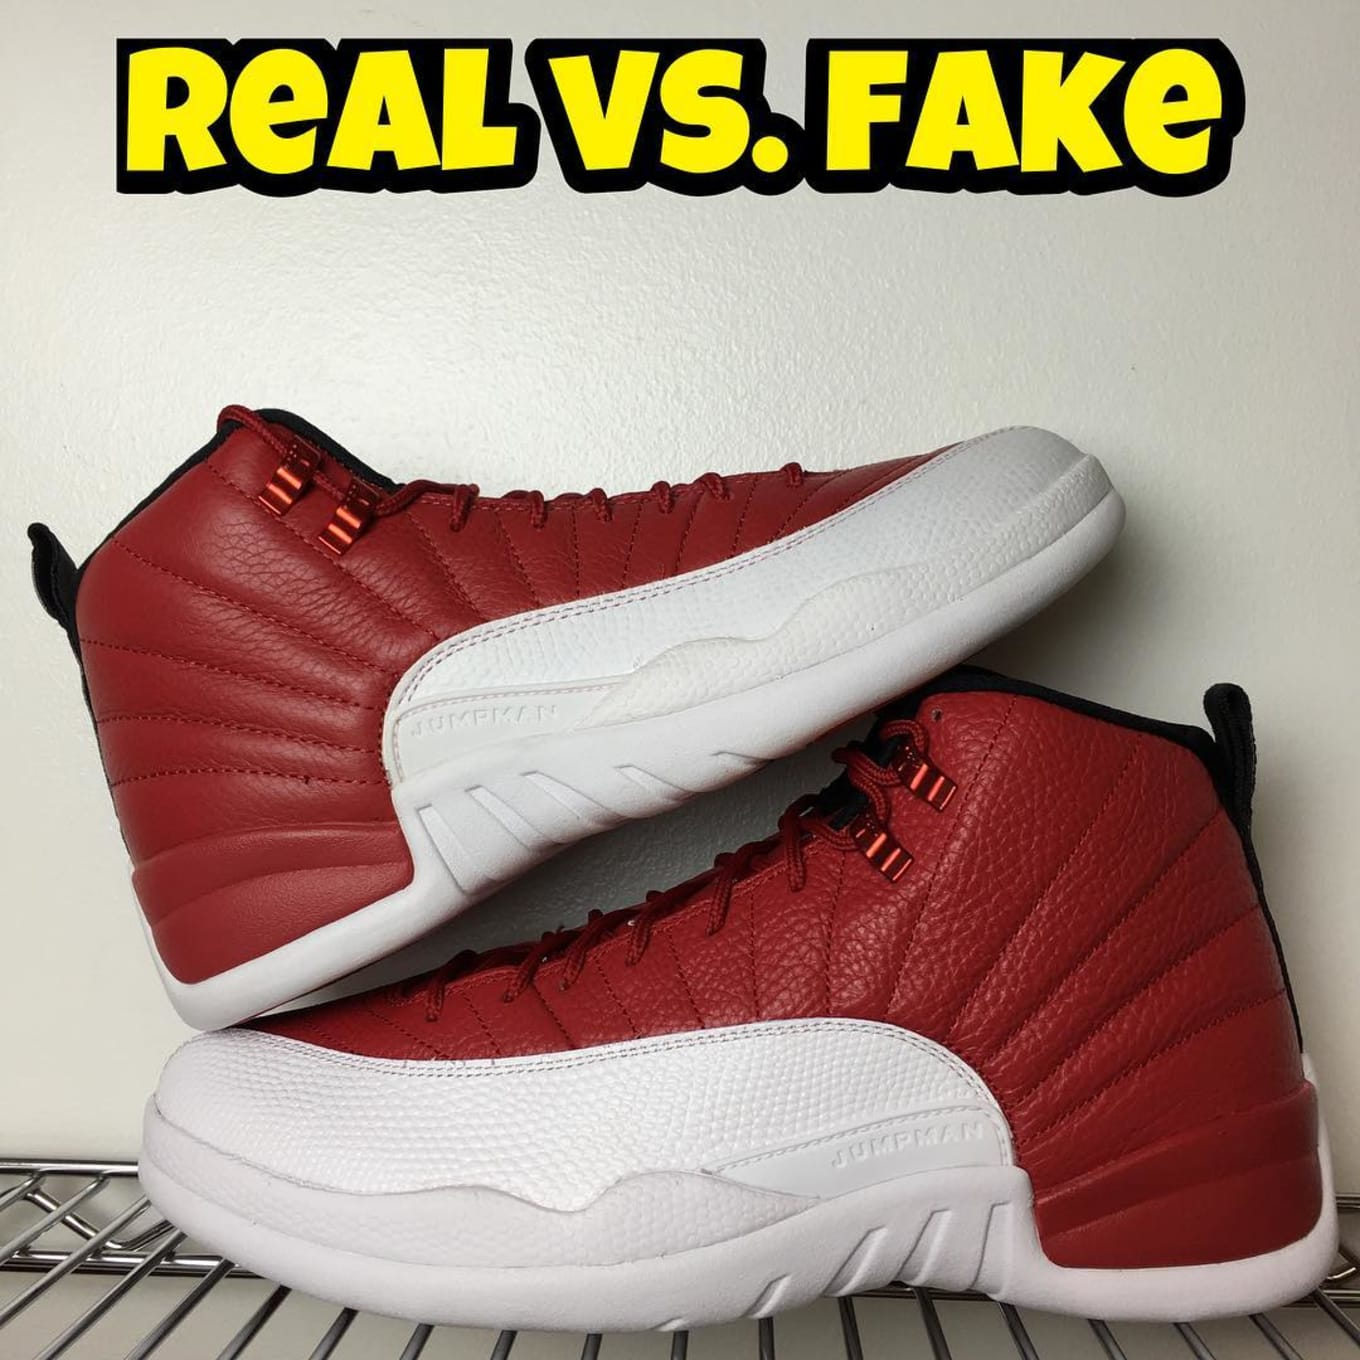 c8e828cea8cc04 Air Jordan XII 12 Gym Red Real Fake Legit Check